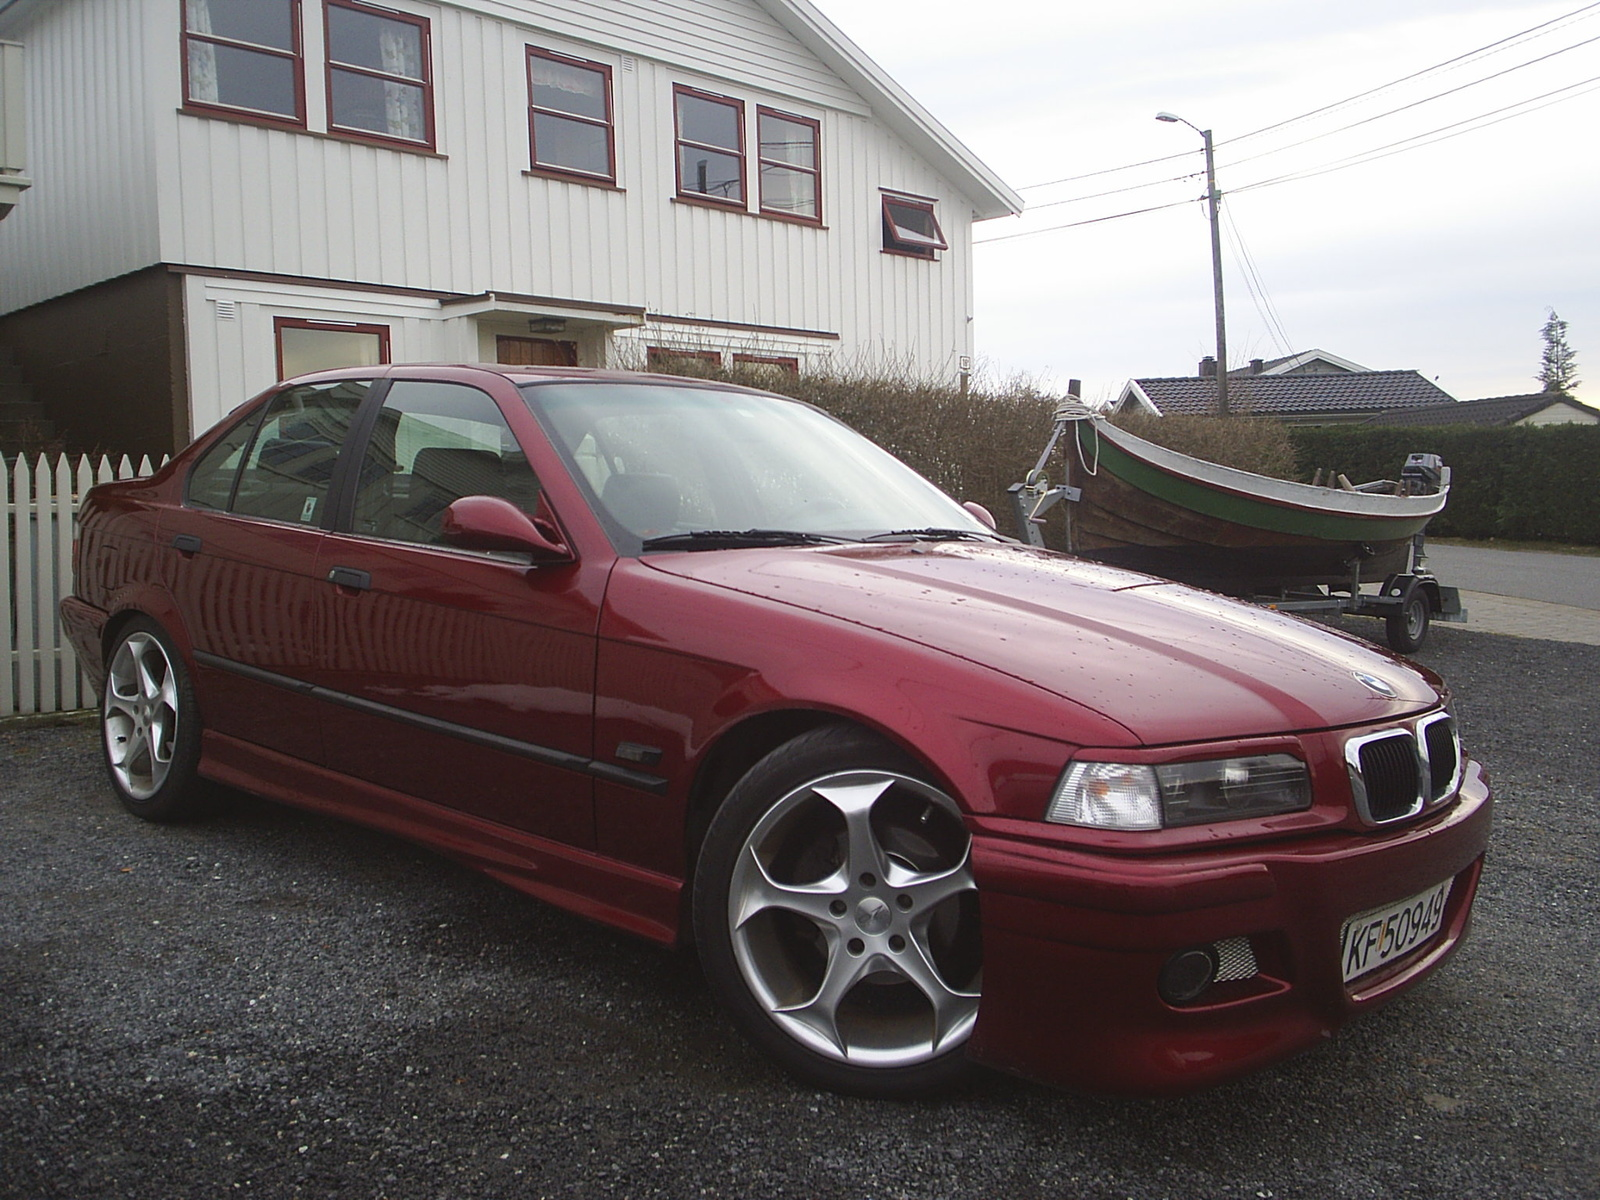 BMW 3 series 318is 1992 photo - 11